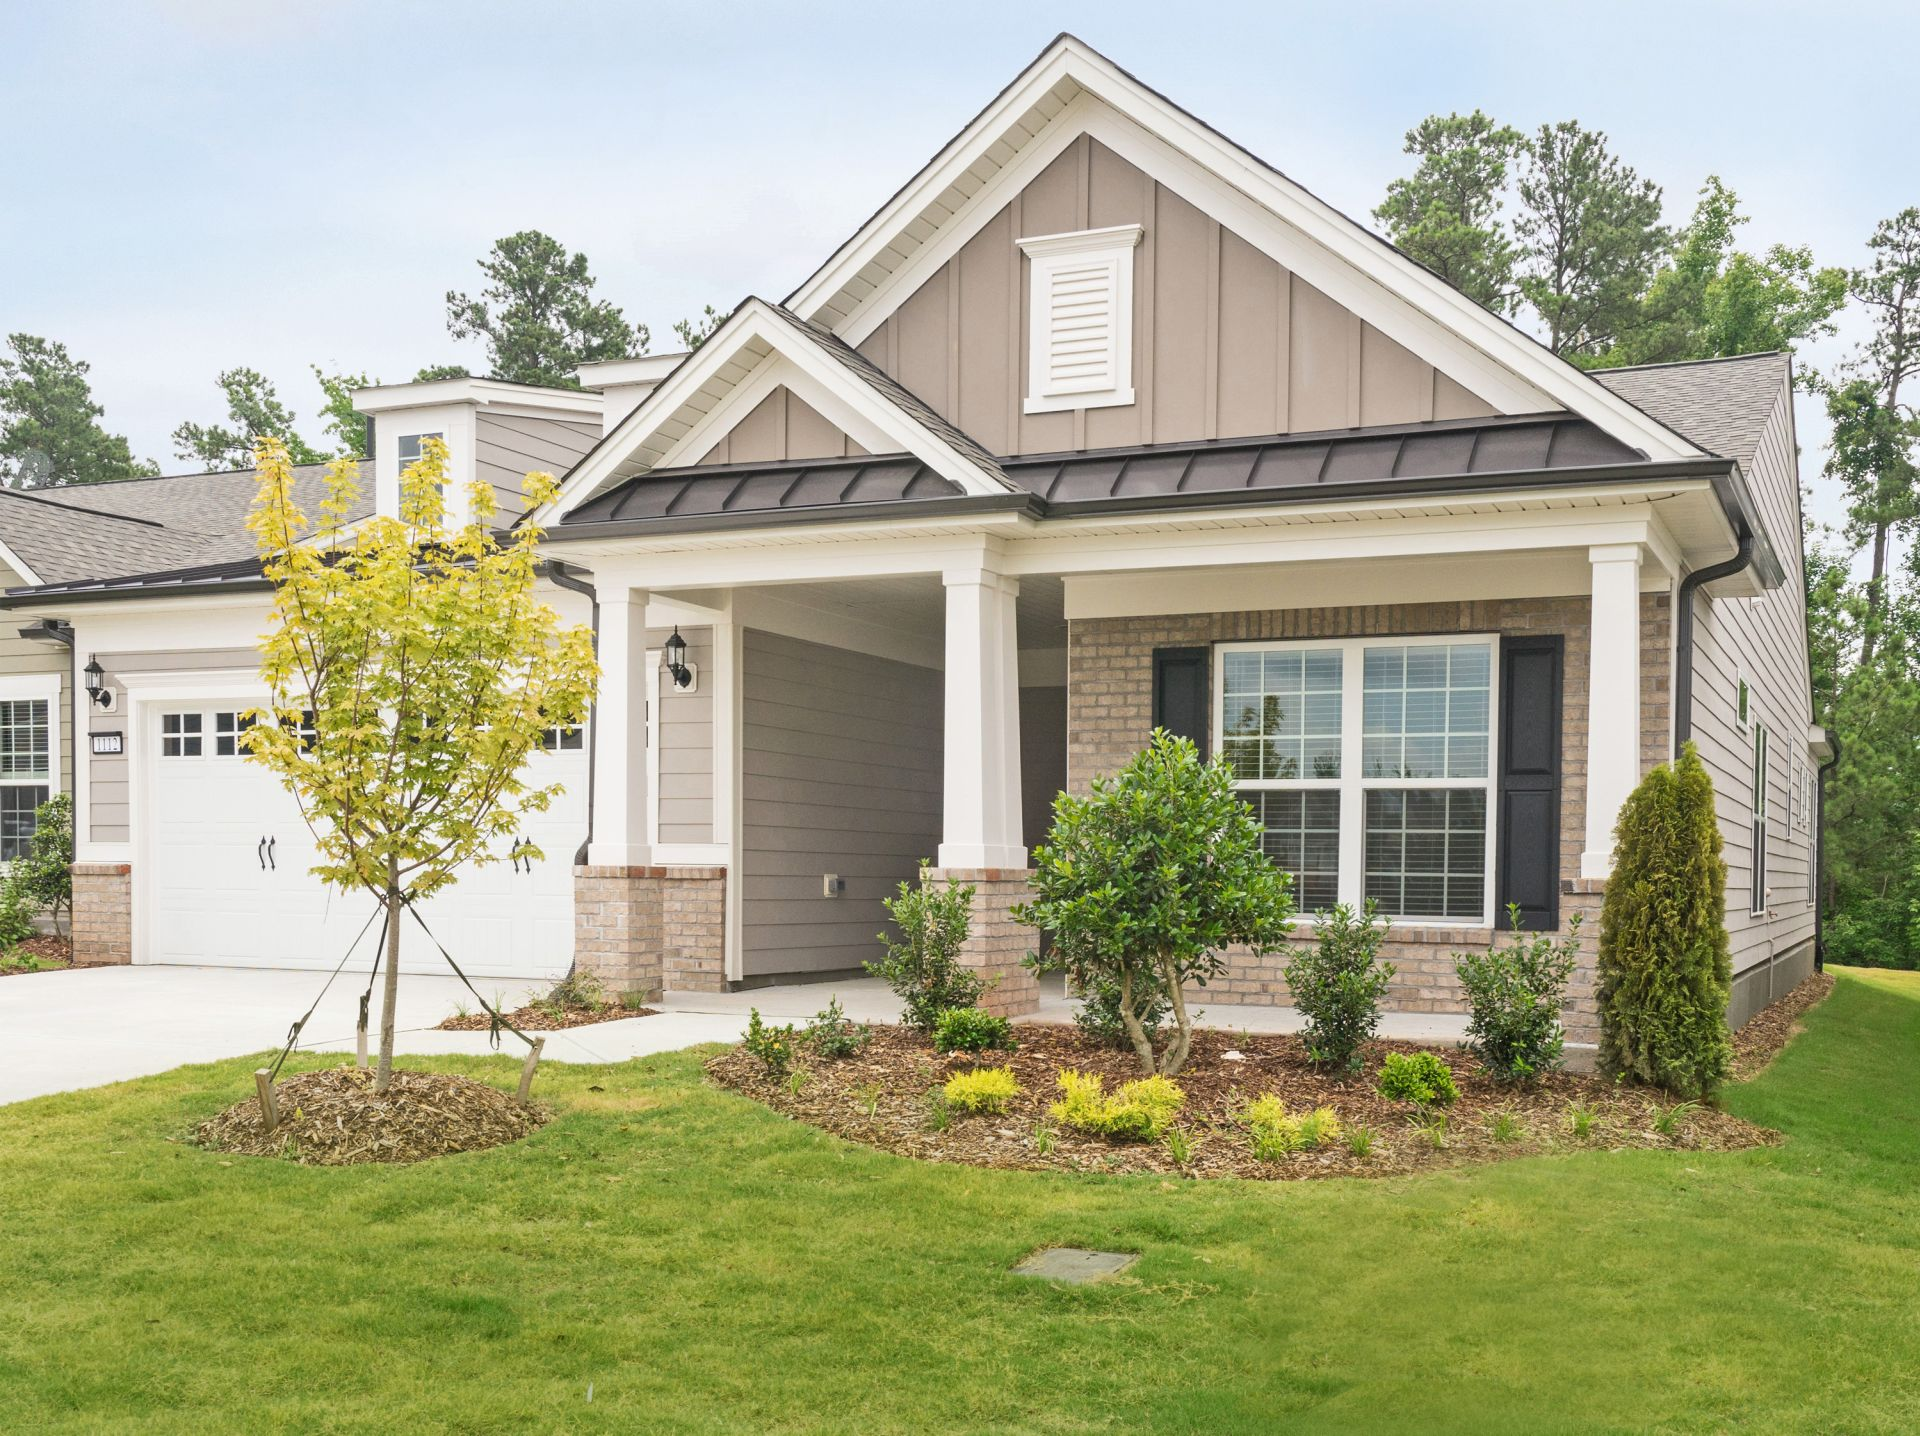 A Nearly New Carolina Arbors Home on a Gorgeous Wooded Lot!